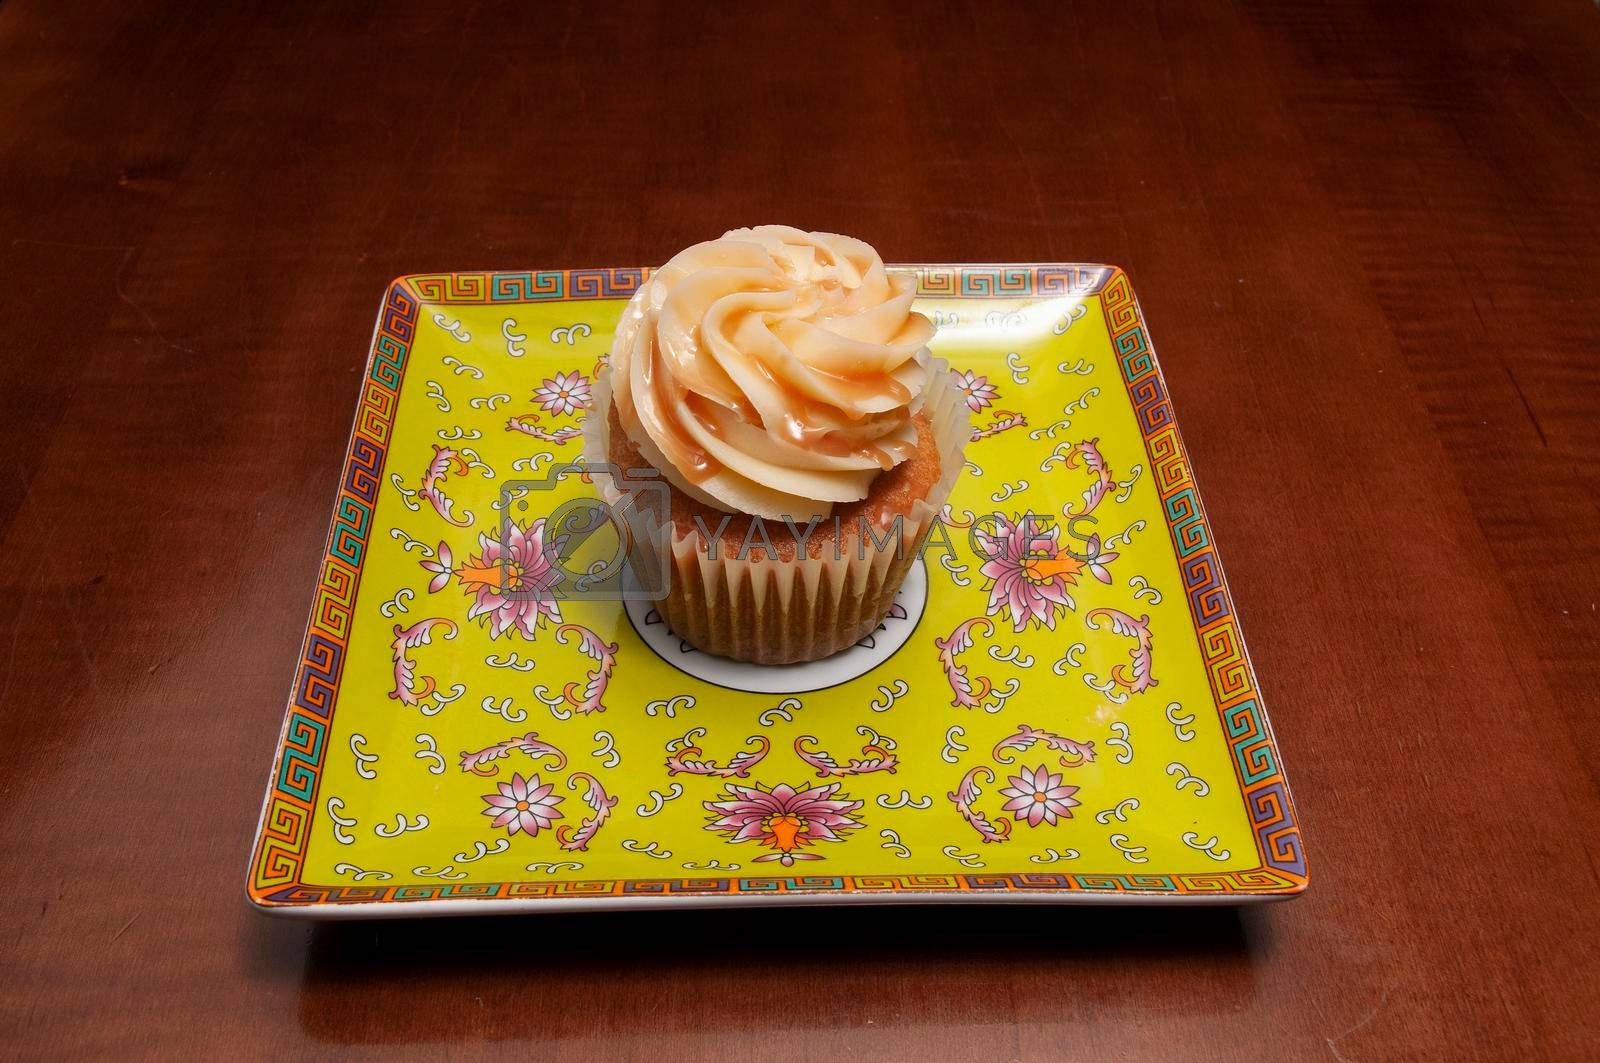 Delicious bakery product known as the vanilla with caramel cupcake